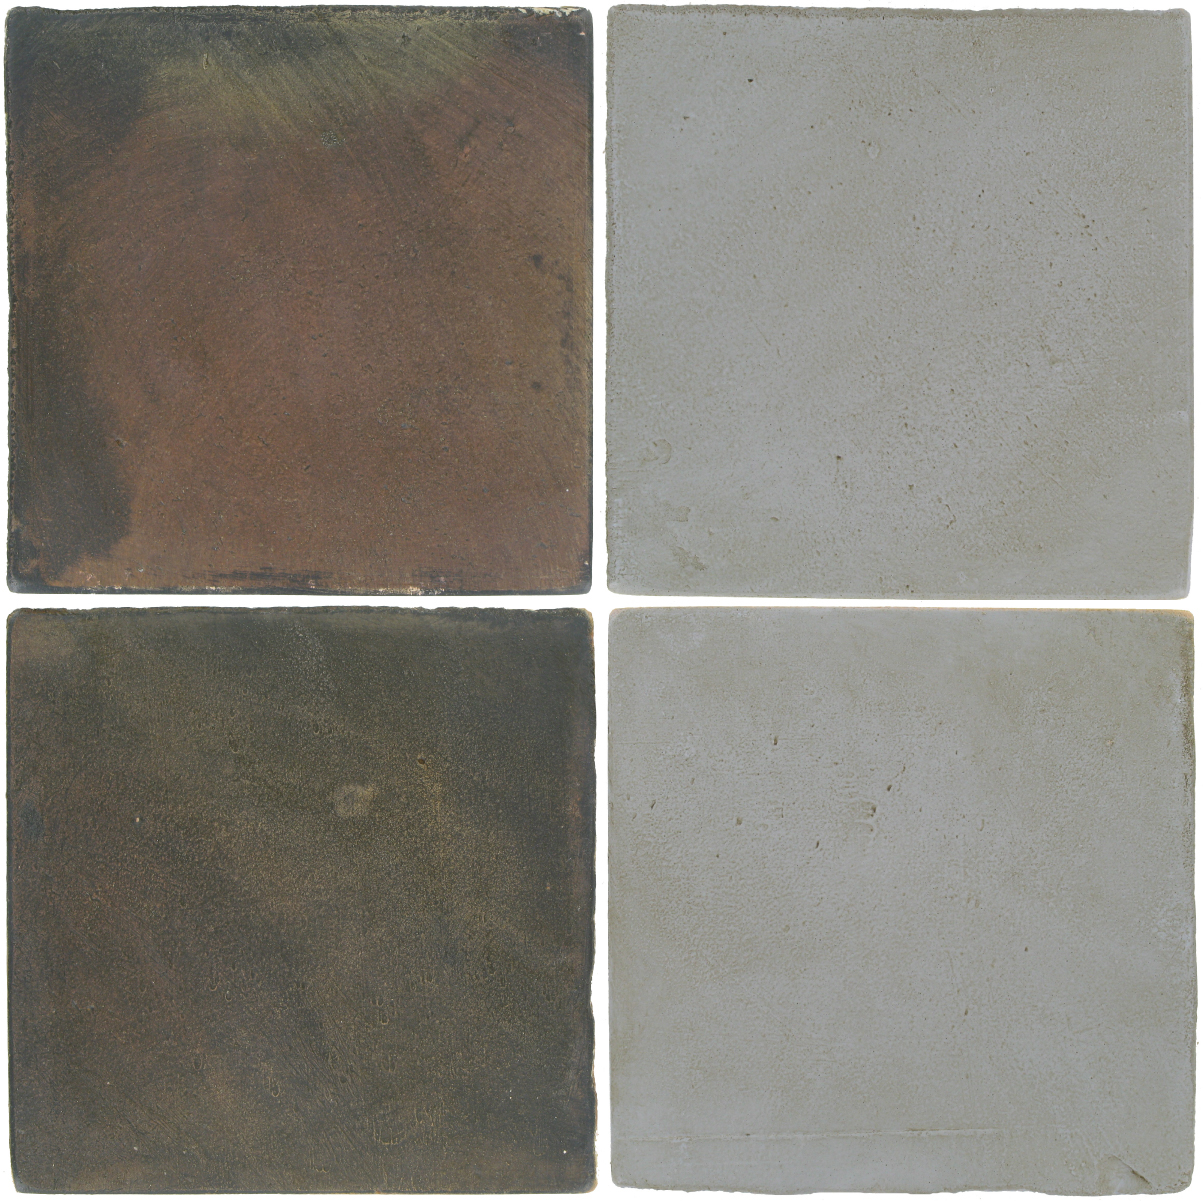 Pedralbes Antique Terracotta  2 Color Combinations  OHS-PSTG Terra Grey + OHS-PGOG Oyster Grey